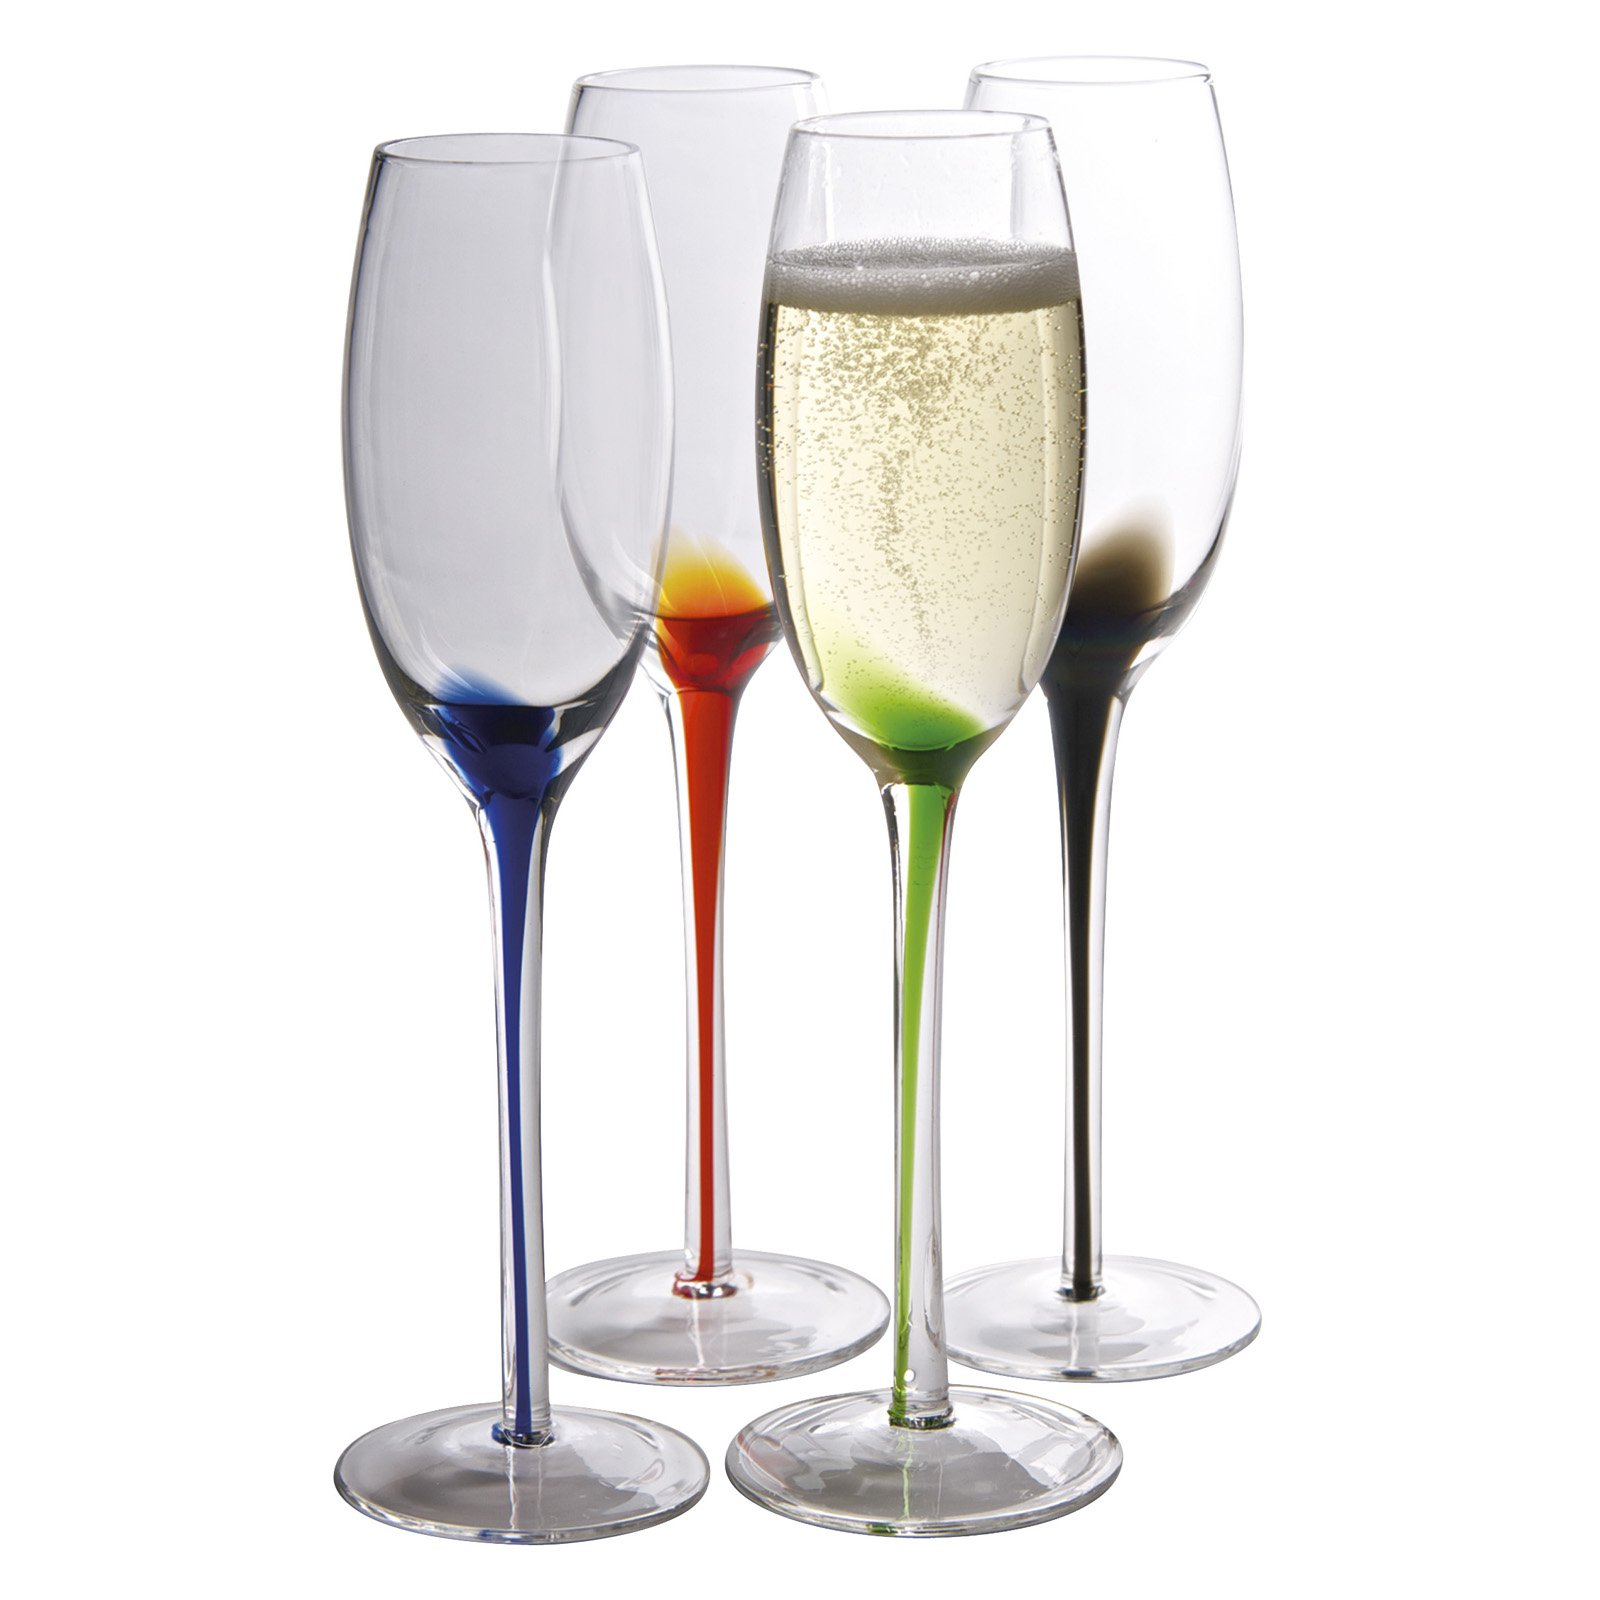 Artland Splash Champagne Flute - Set of 4